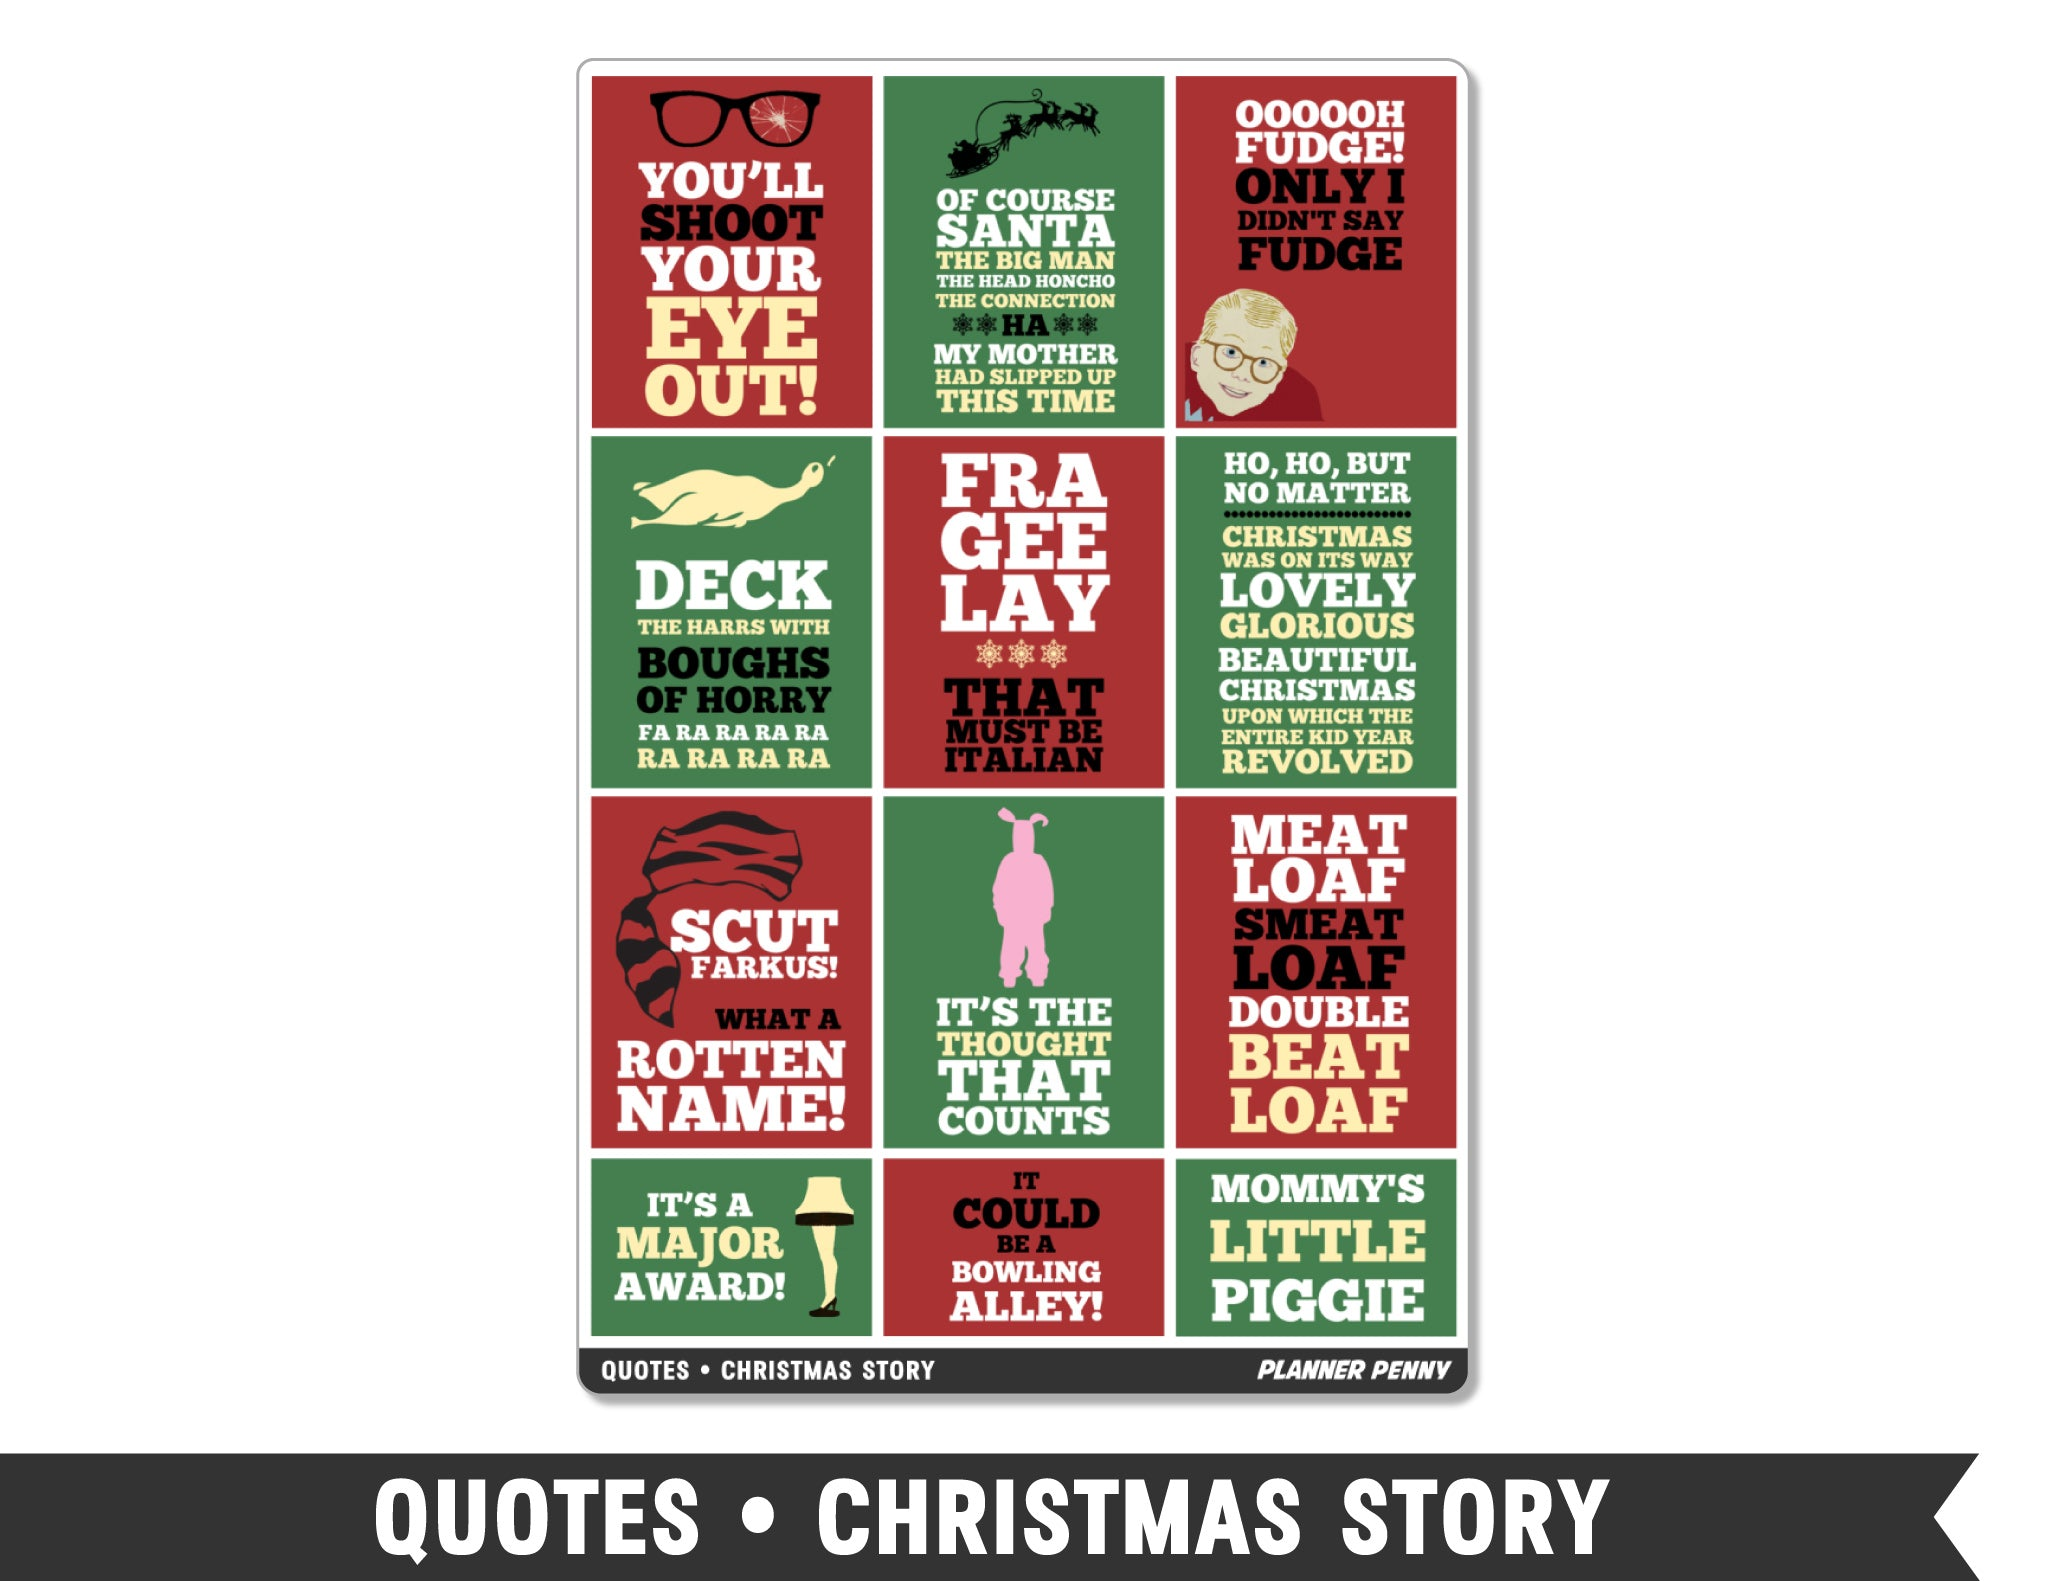 Quotes • Christmas Story Full Box Planner Stickers